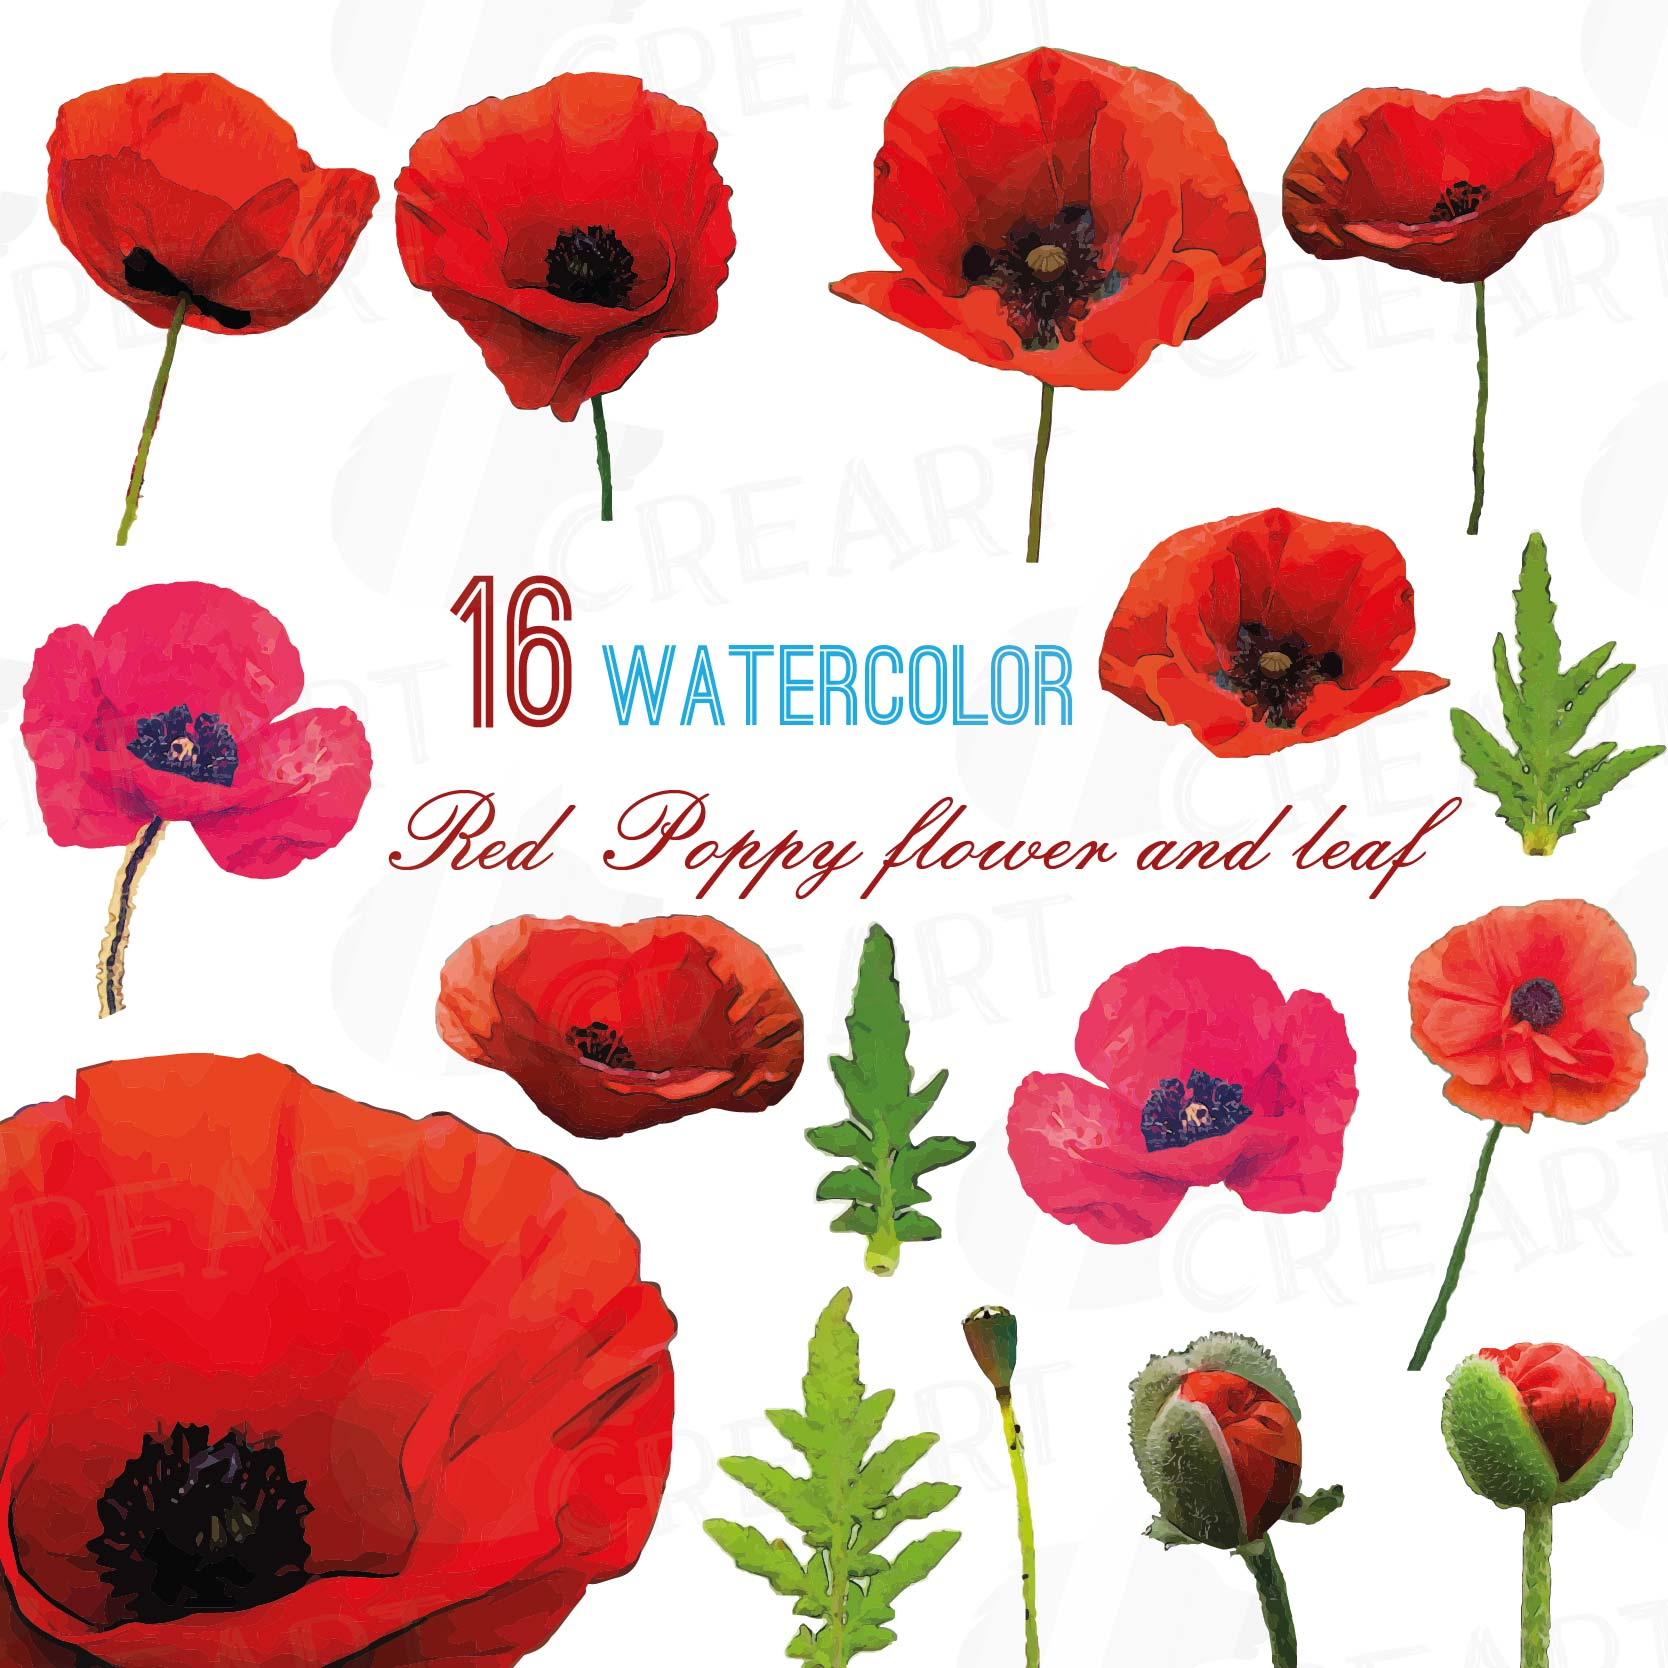 Watercolor red poppy flower and leaf clip art pack poppies clip art watercolor red poppy flower and leaf clip art pack poppies clip art png mightylinksfo